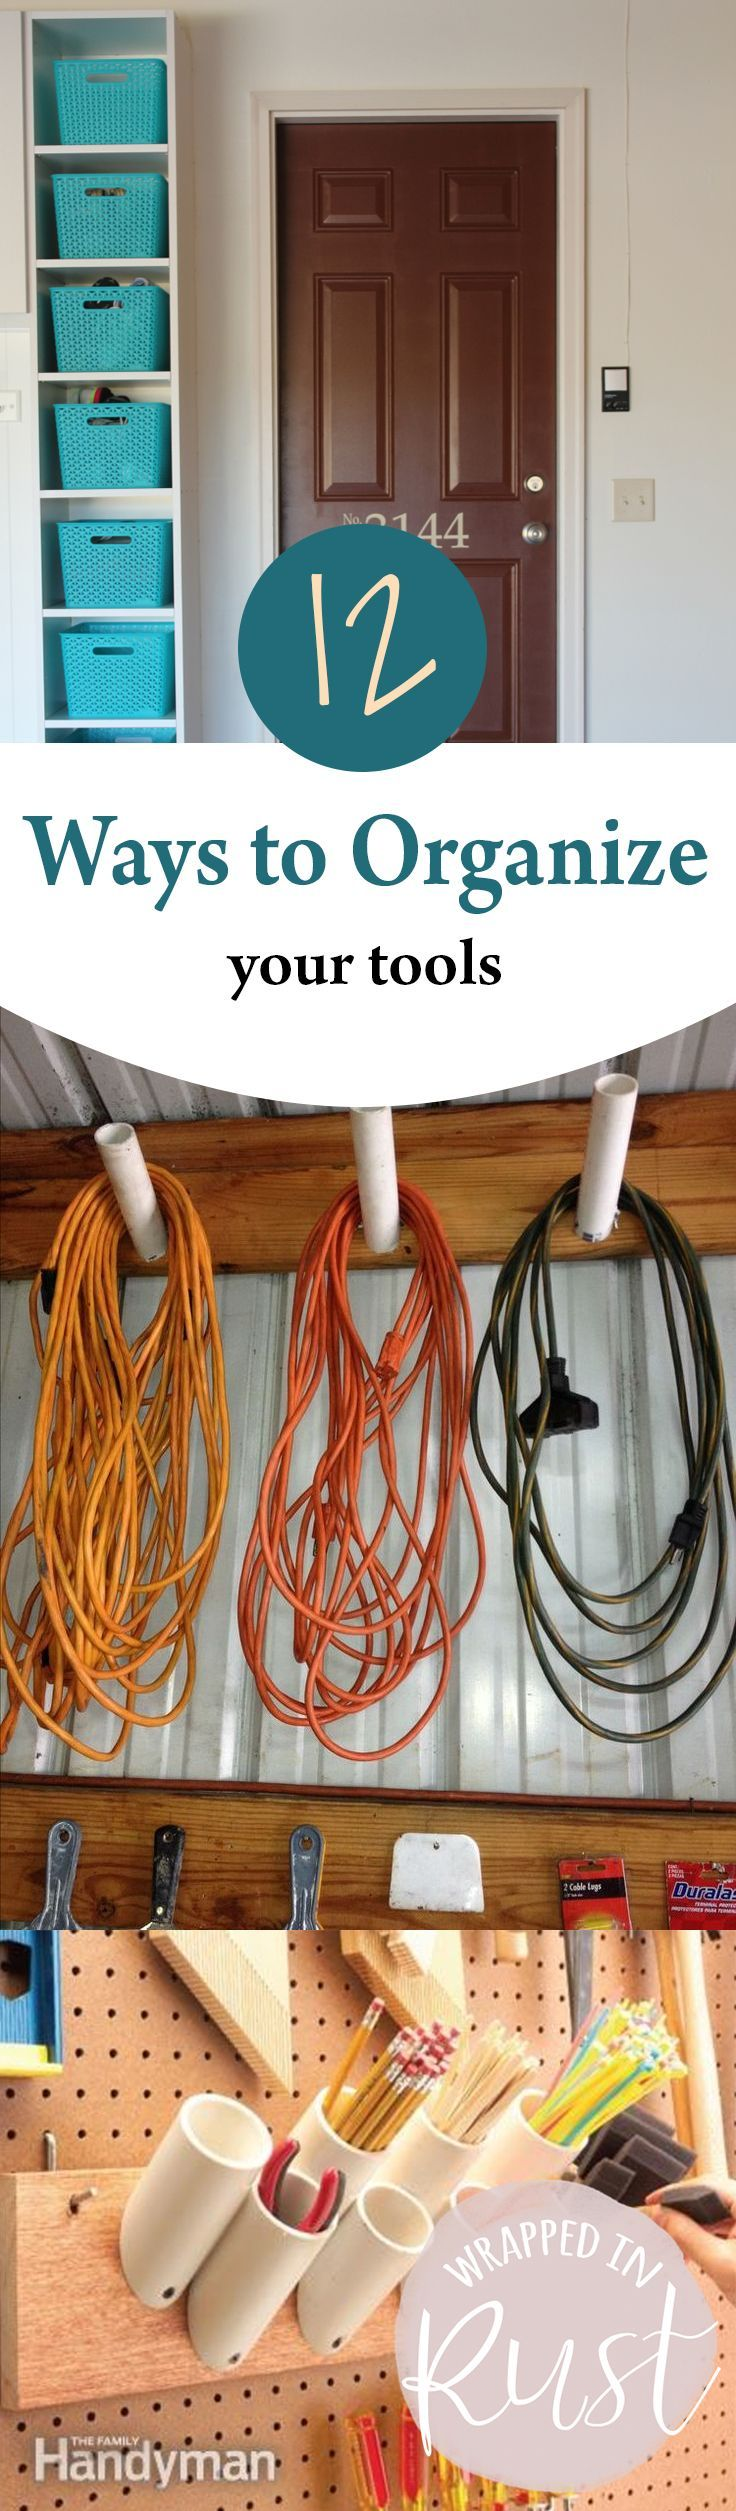 12 Ways to Organize Your Tools